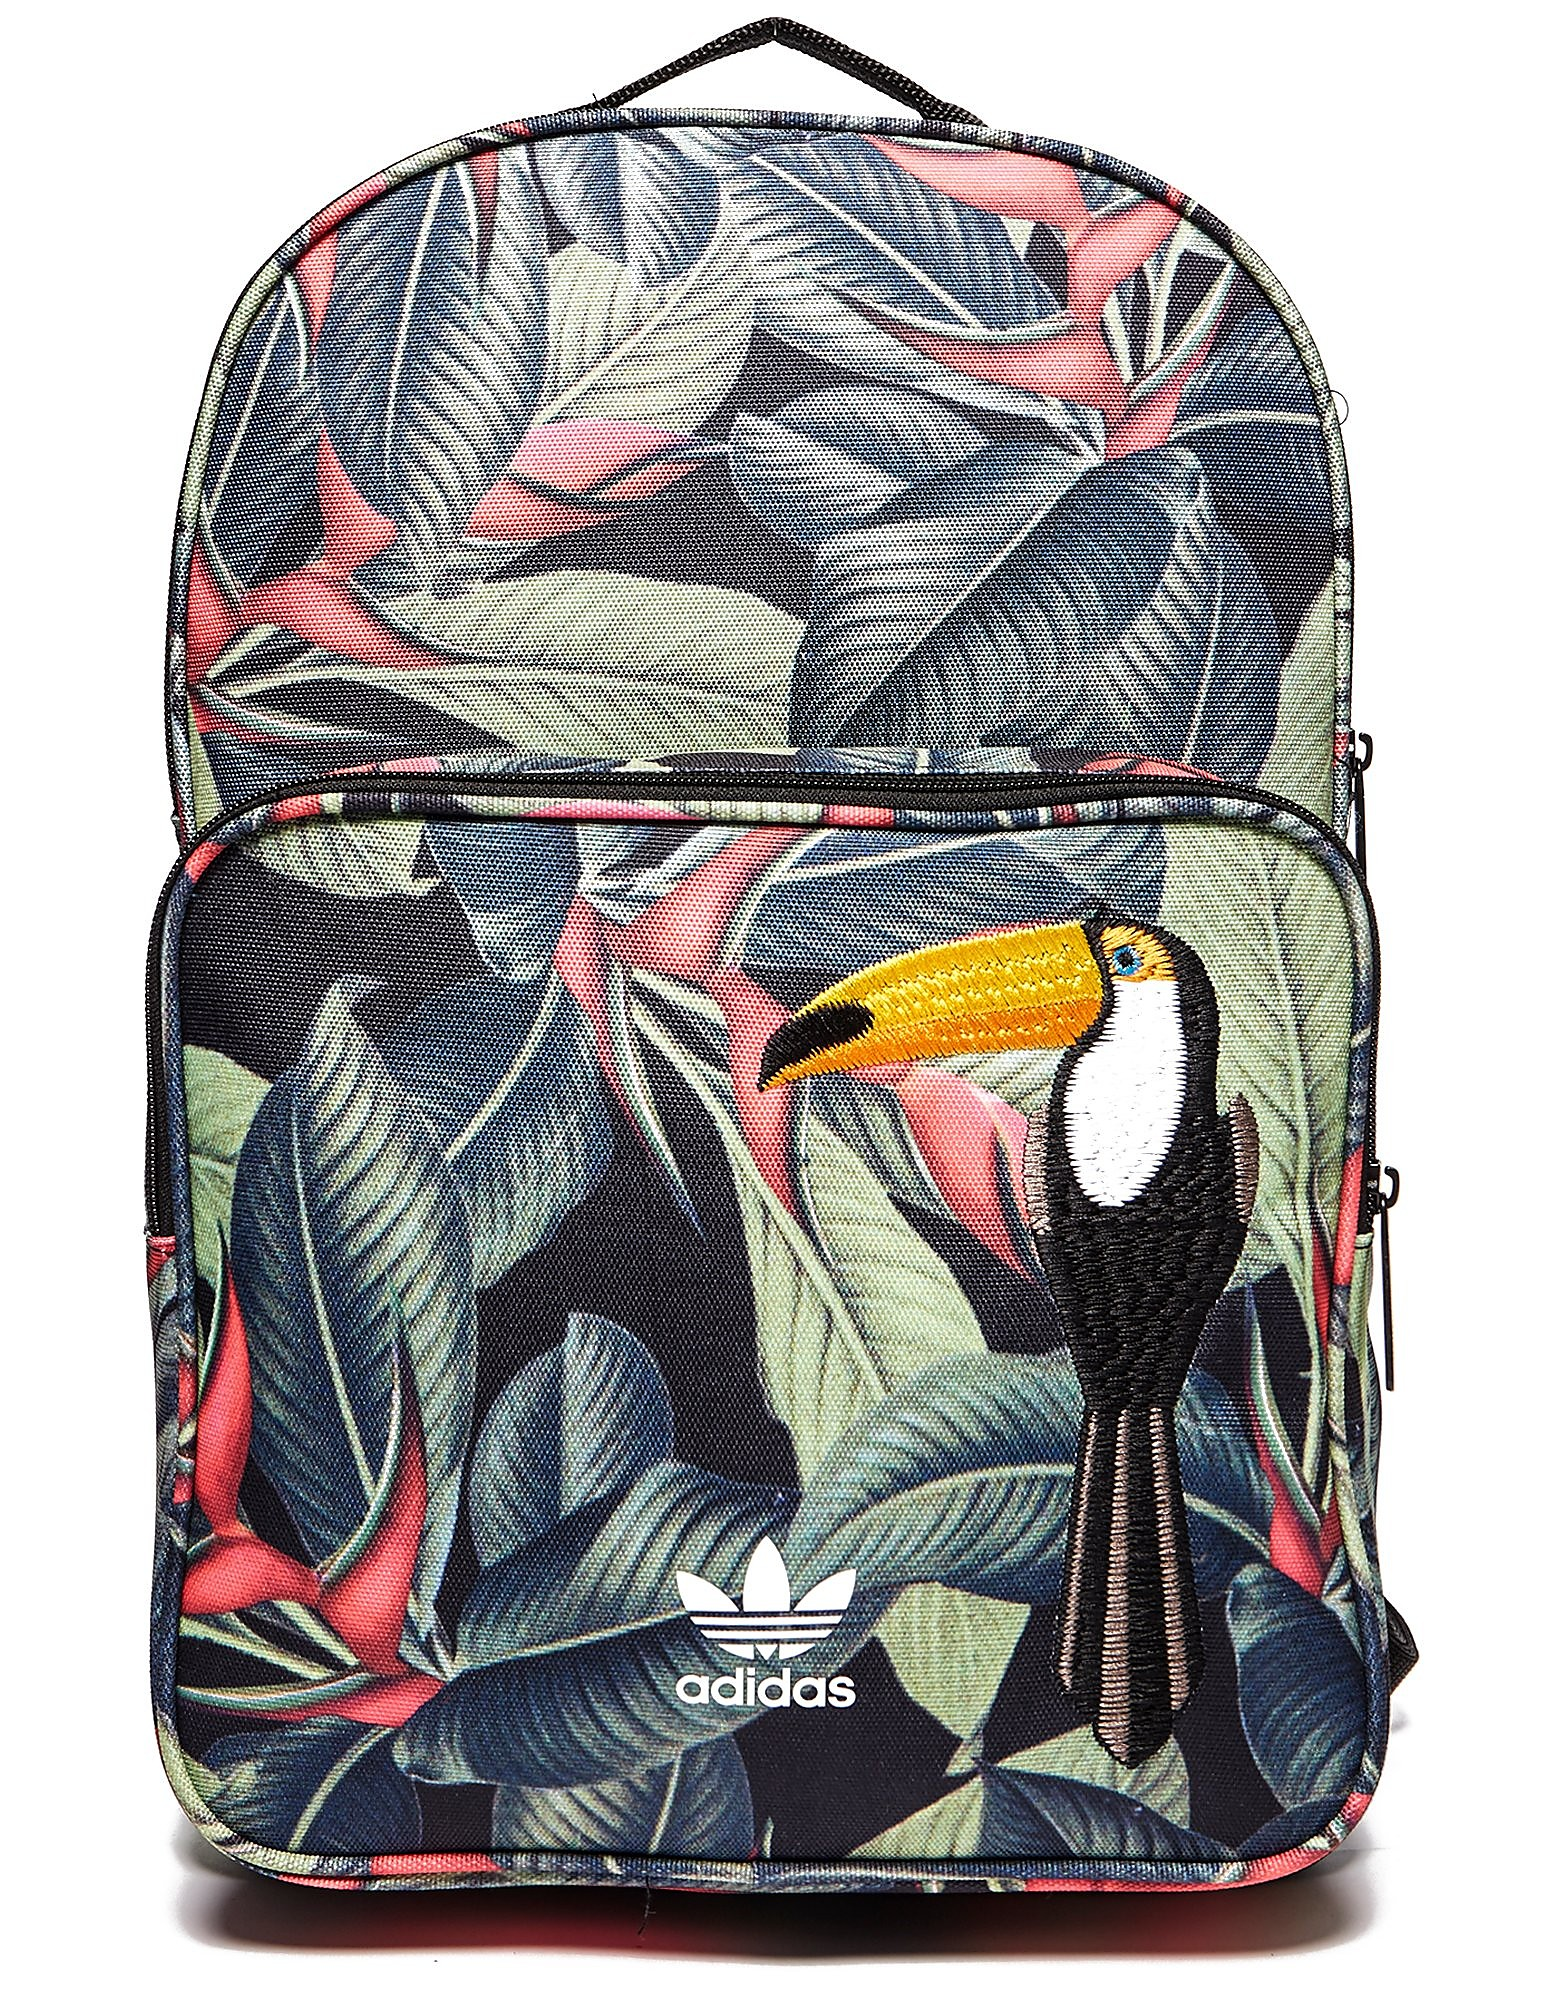 adidas Originals Classic Farm Backpack